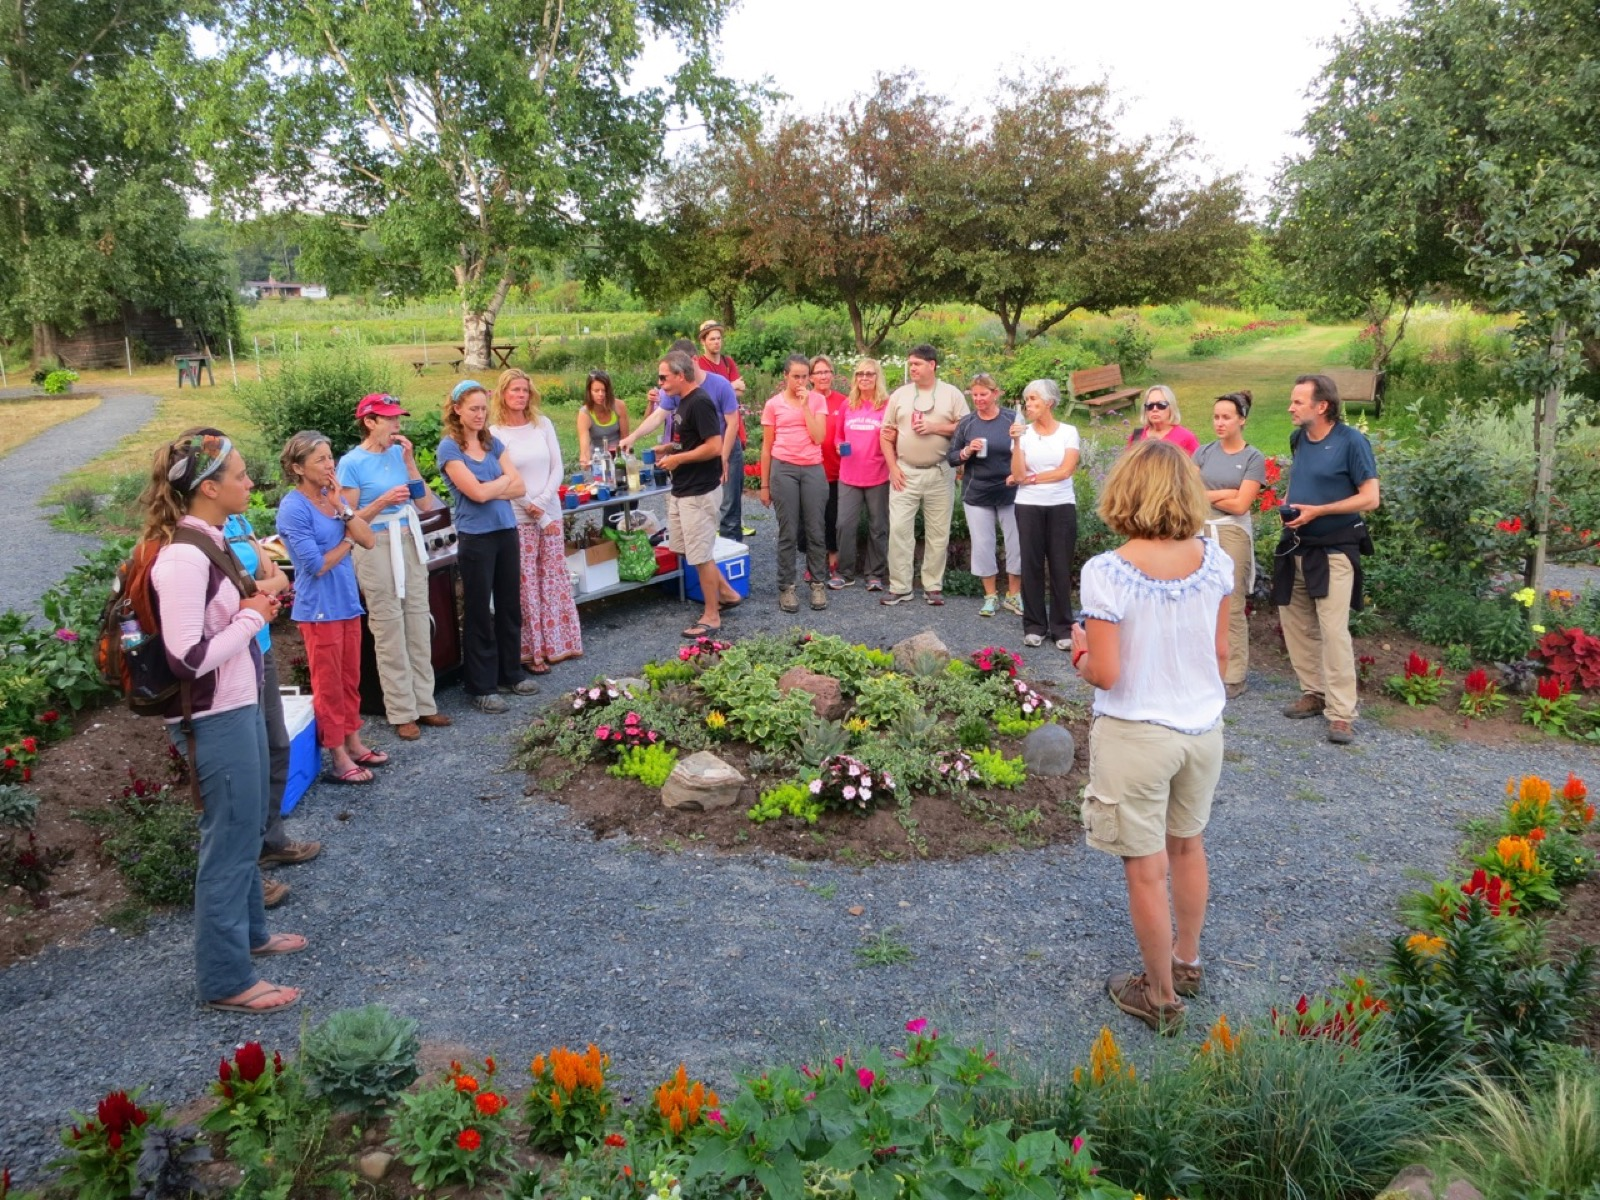 A woman addressing a group of adults in a garden.